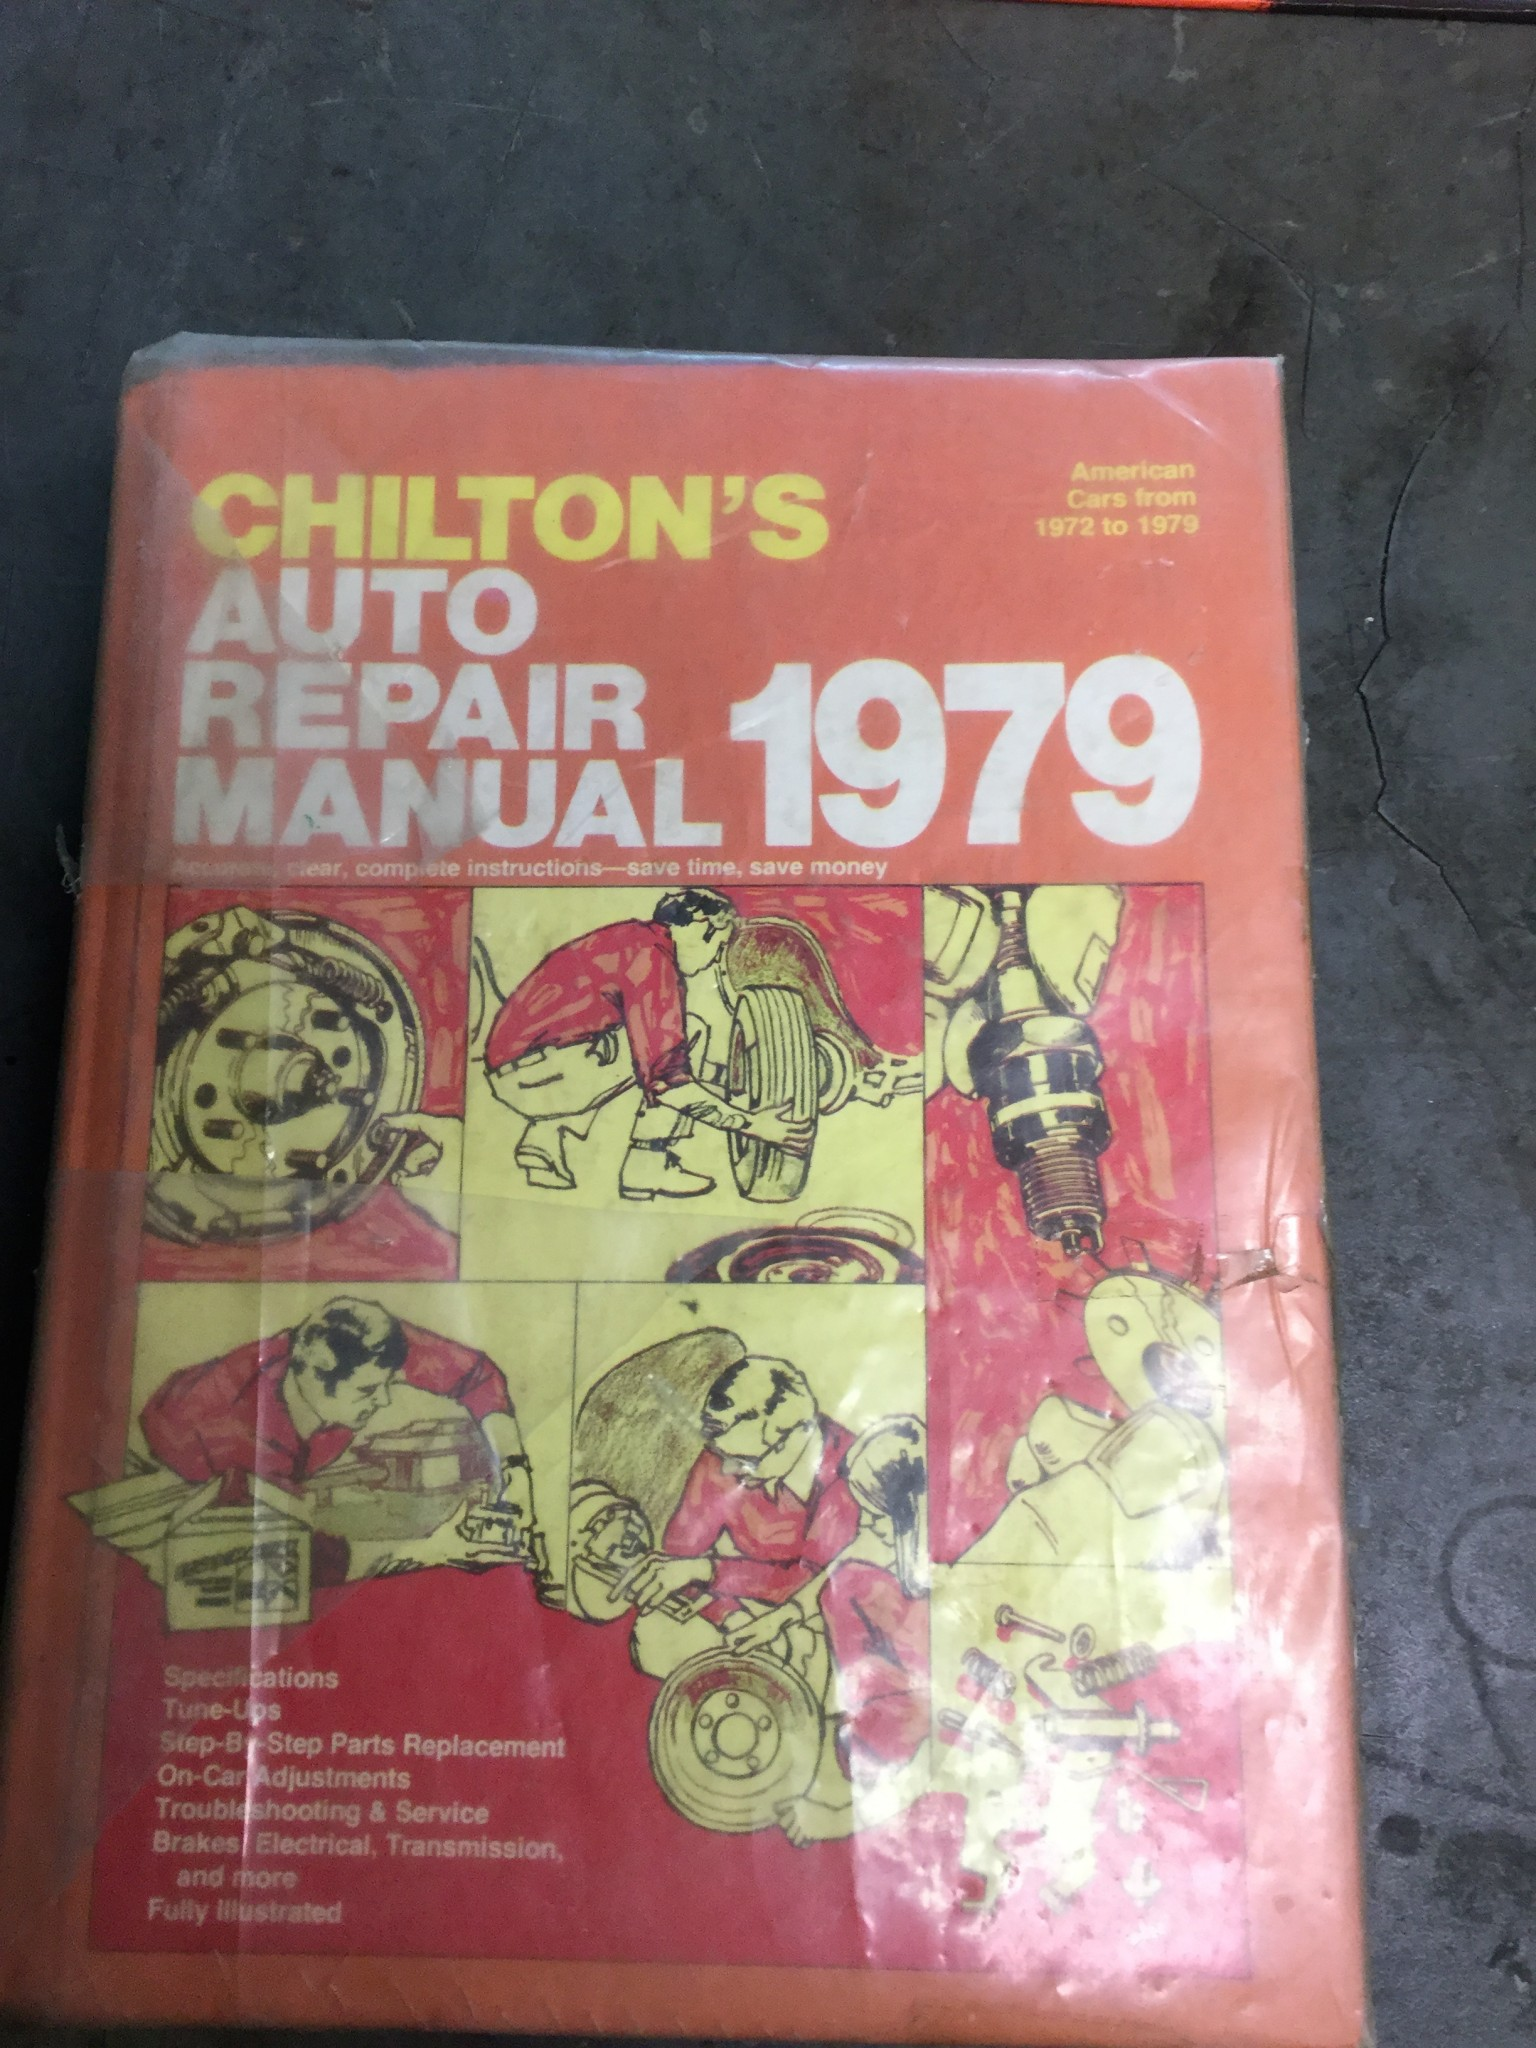 Chilton's 1979 Auto Repair Manual